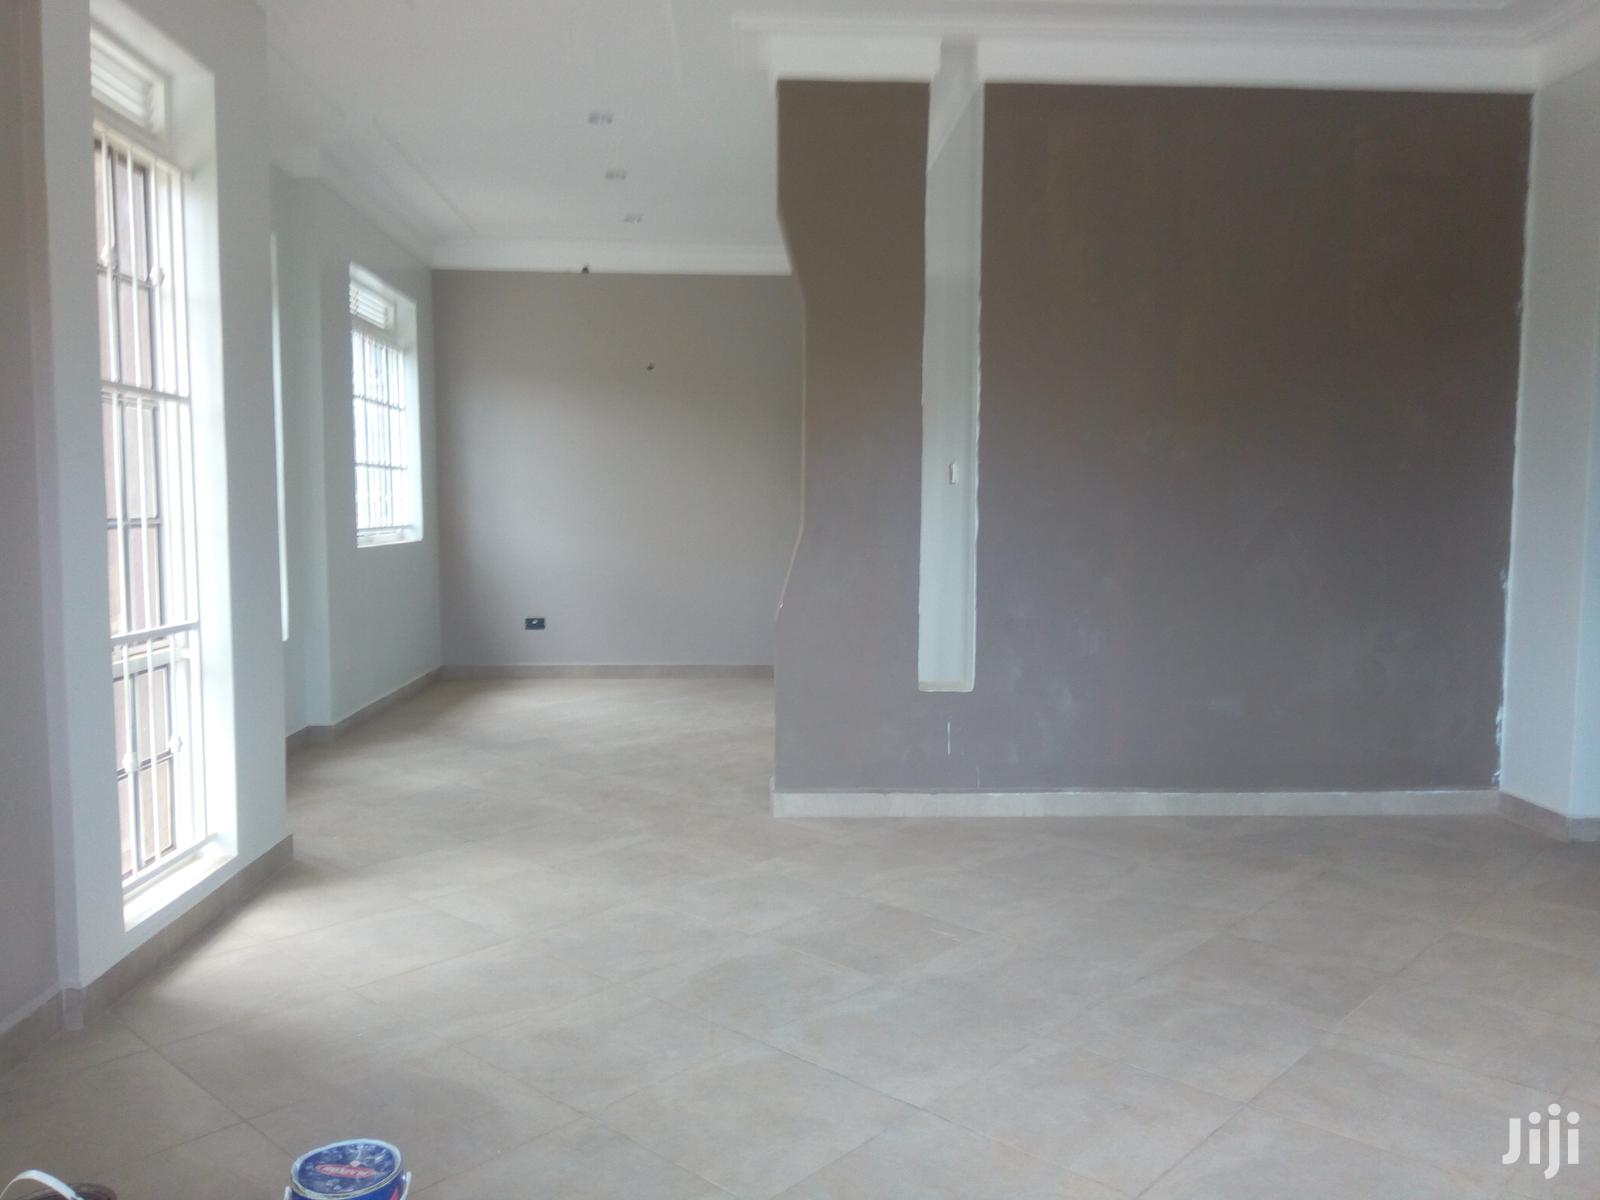 Kyanja Diplomat Nine Rental Apartments on Sell | Houses & Apartments For Sale for sale in Kampala, Central Region, Uganda